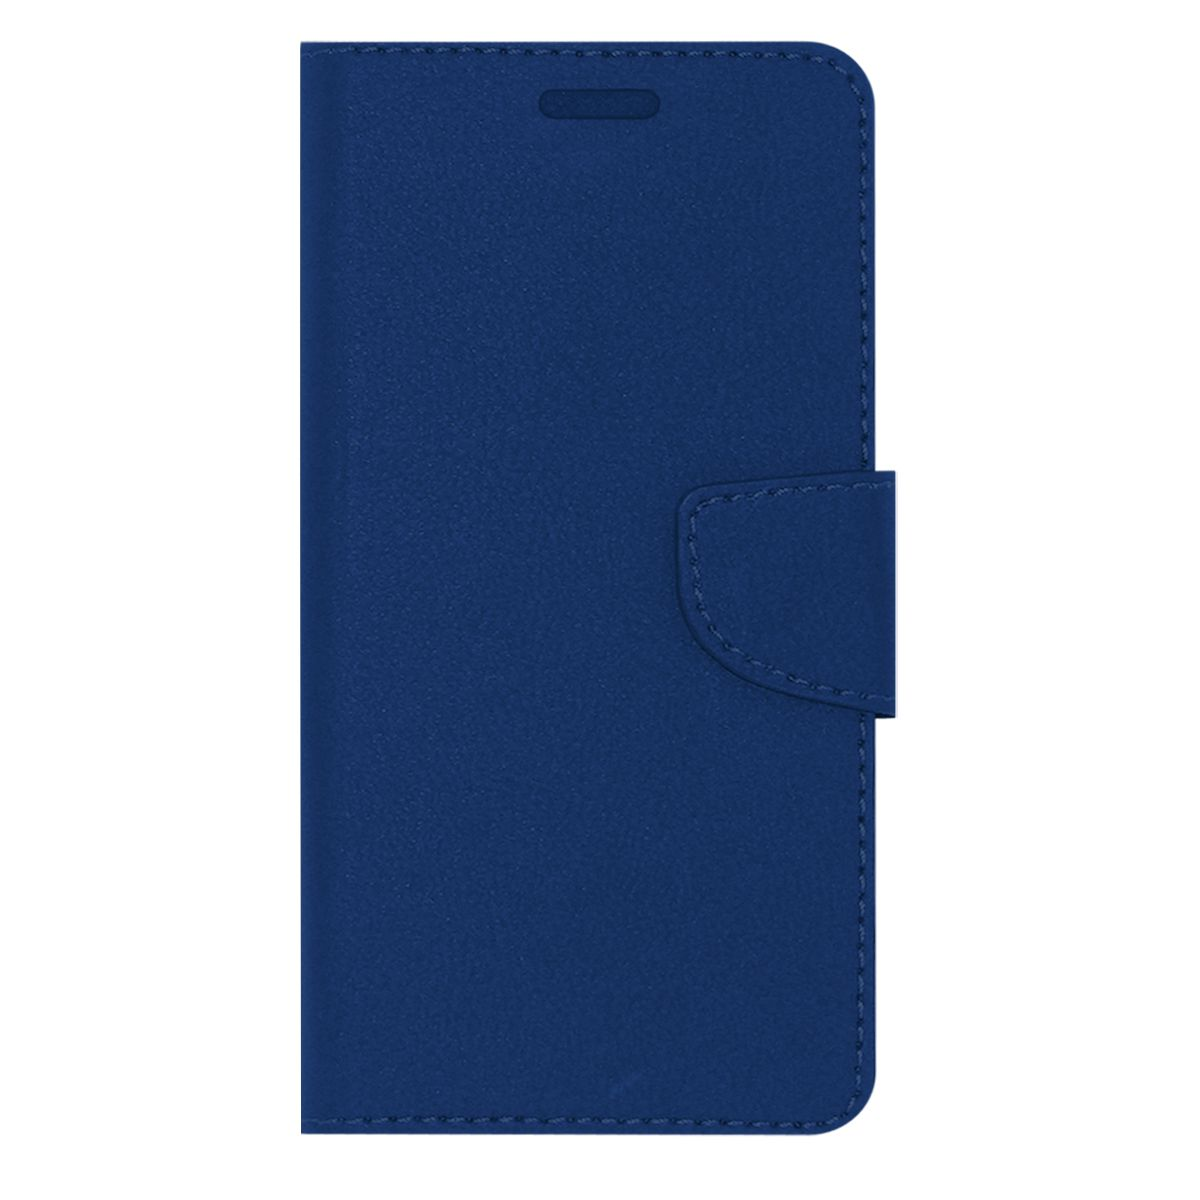 size 40 bb3d0 ab755 Vivo Y21L Flip Cover by ACM - Blue